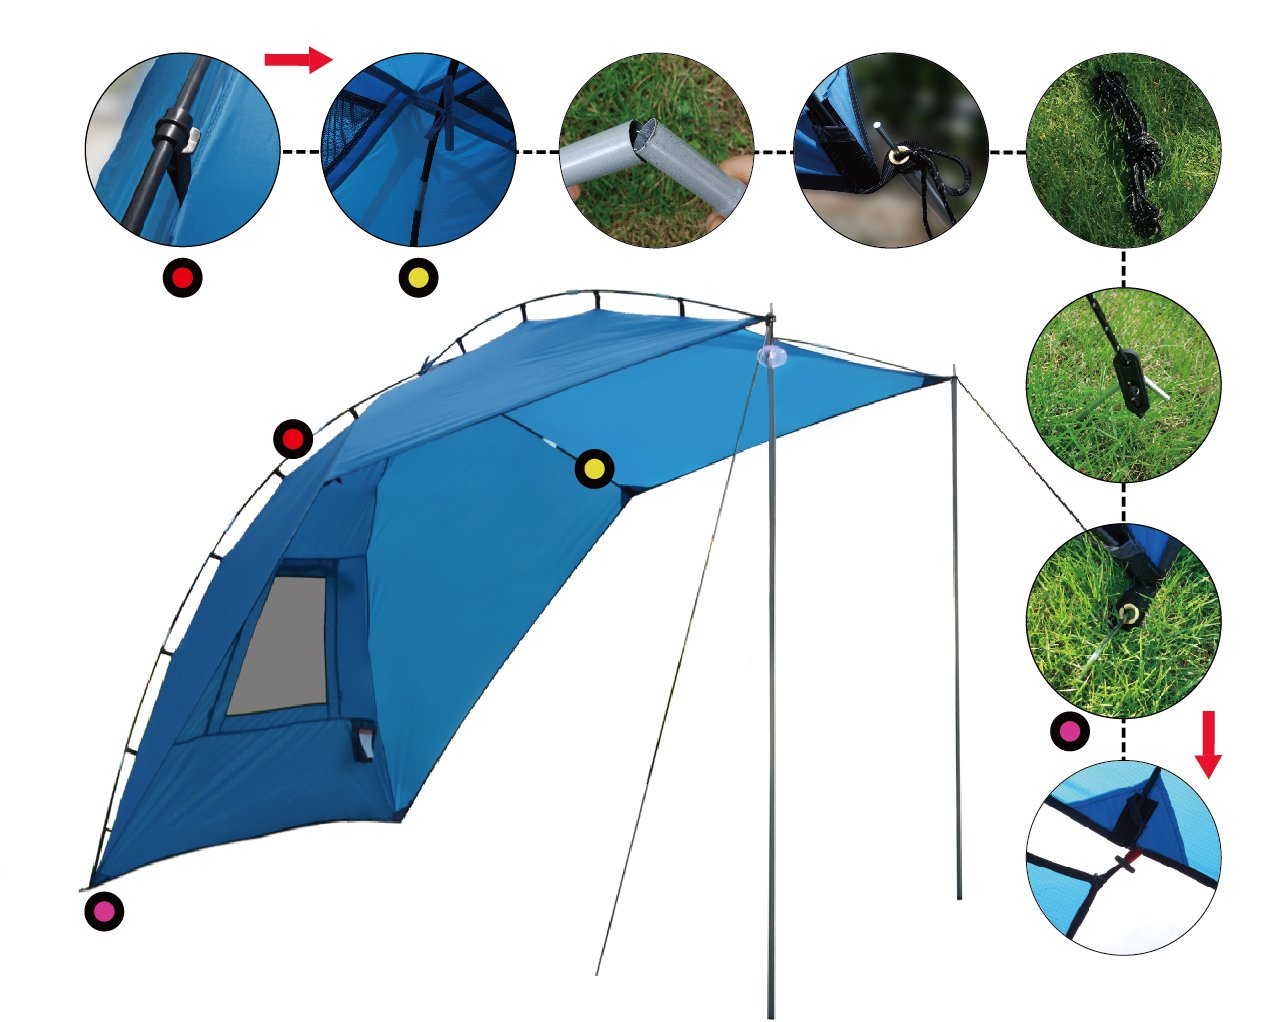 Leader Accessories Easy Set Up Camping SUV Tent/Awning/Canopy/ Sun Shelter Tailgate Tent Beach Tent Suitable For SUV Mini Van Campers RVs Waterproof With Adjustable Sunwall (78.7''x59'') by Leader Accessories (Image #7)